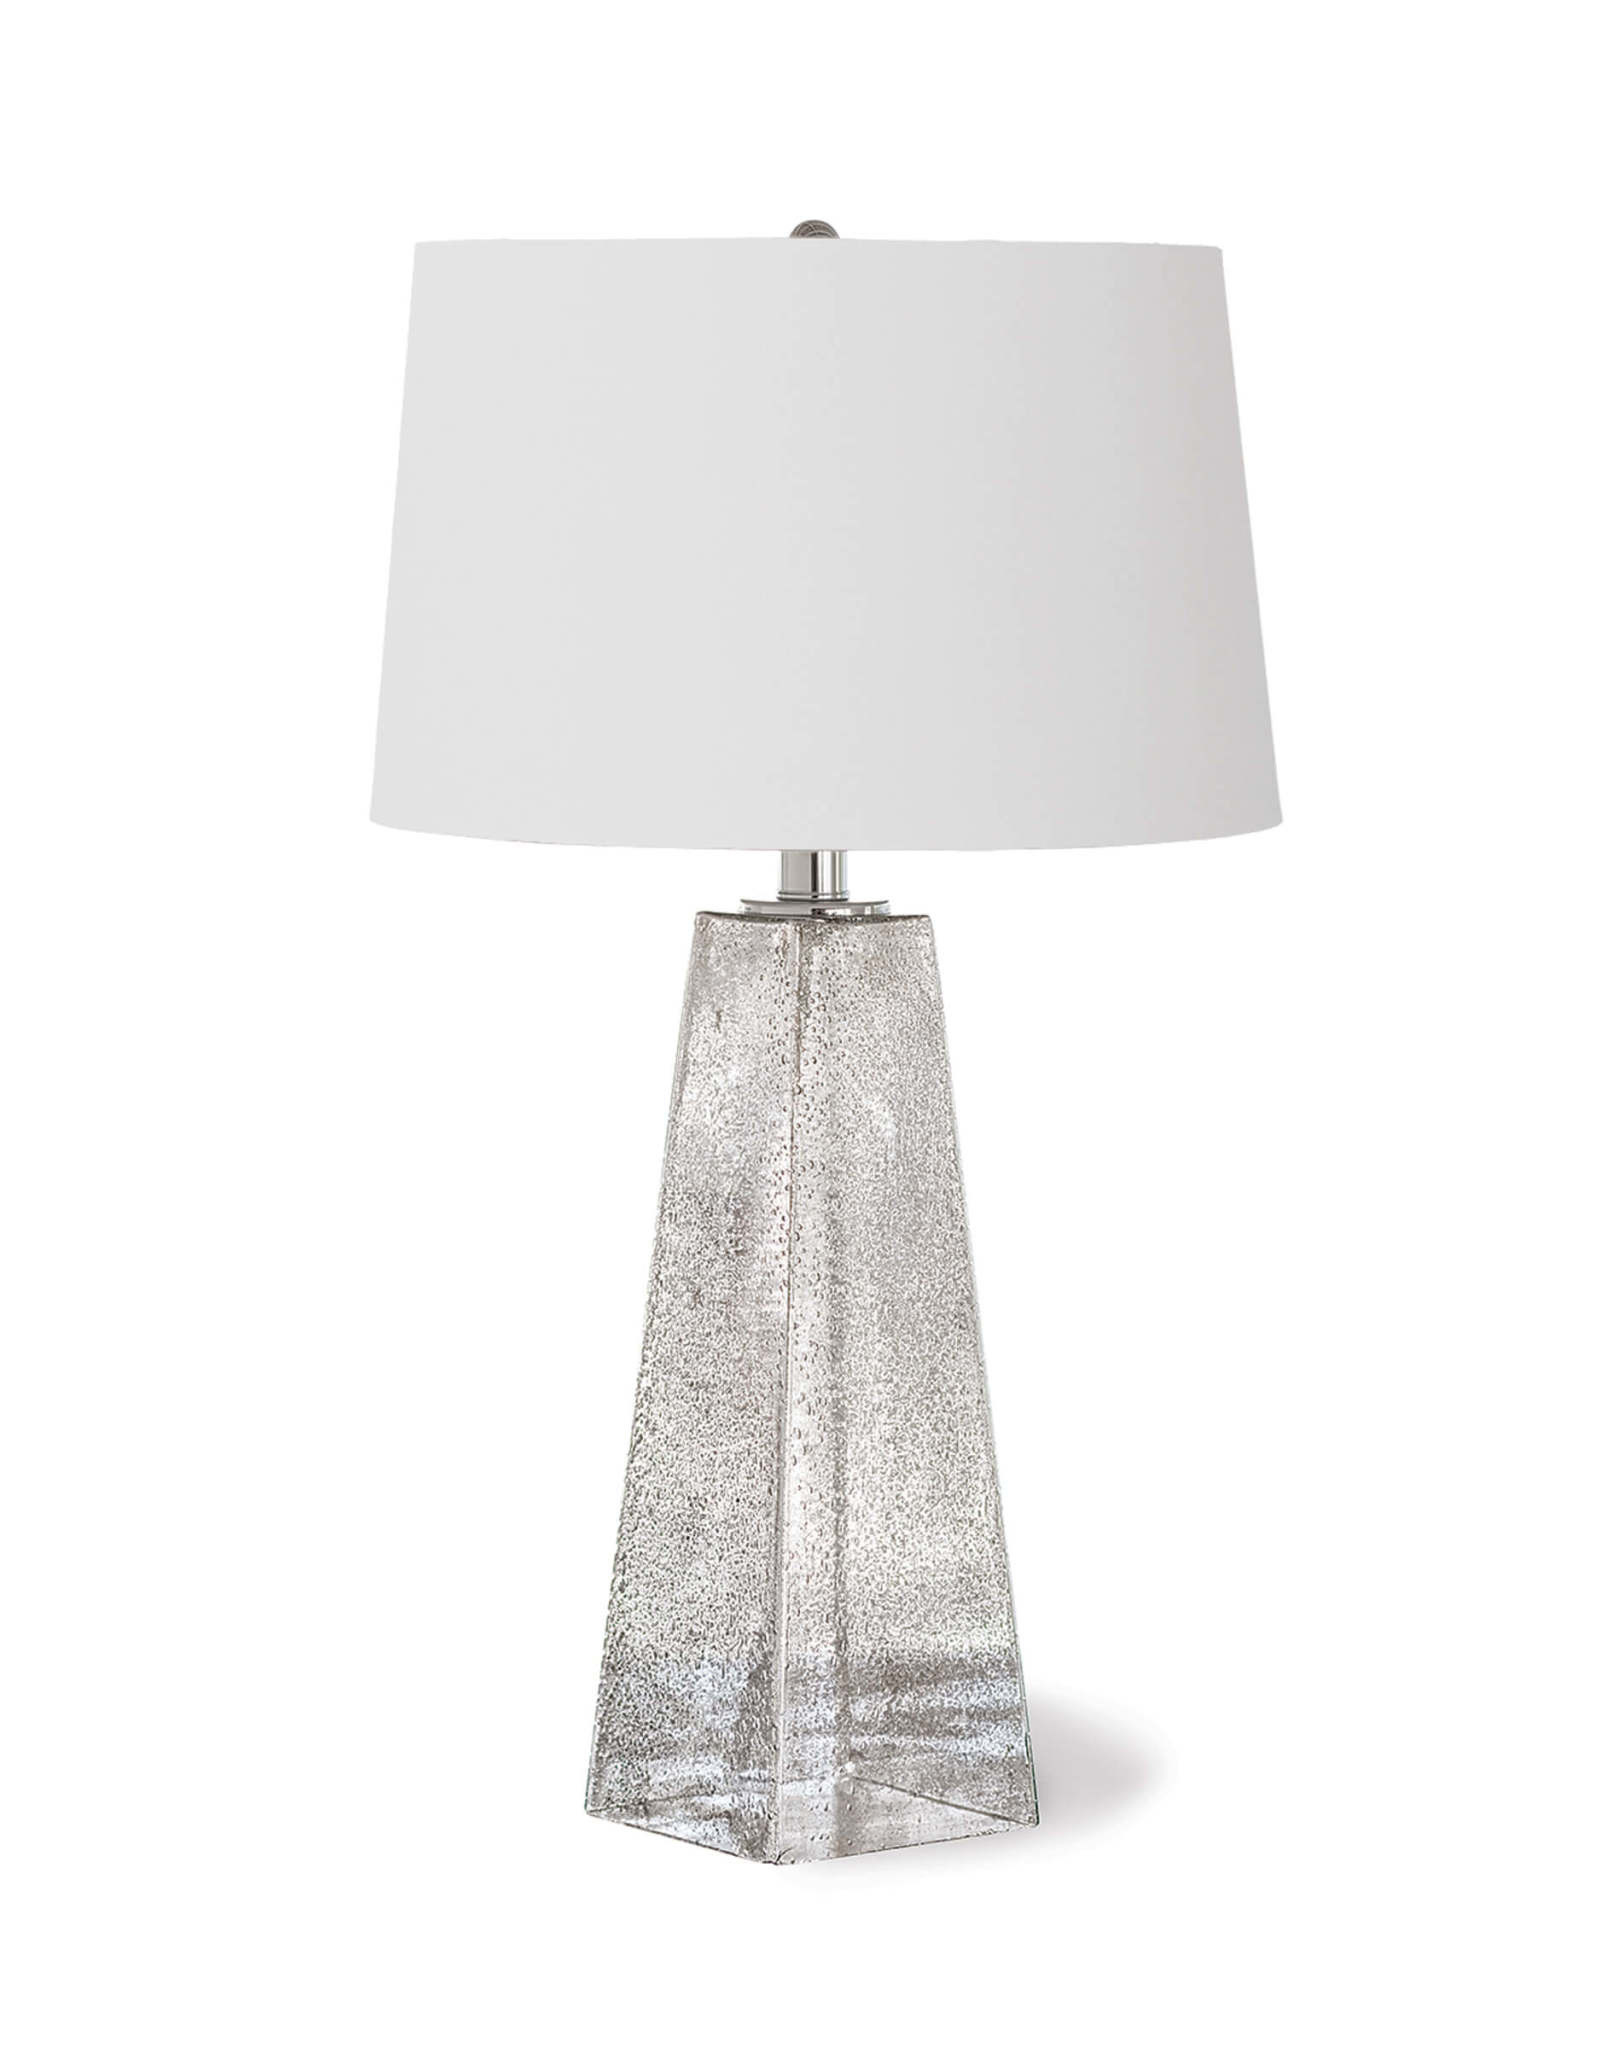 Regina Andrew Design Glass Table Lamp (Stardust)